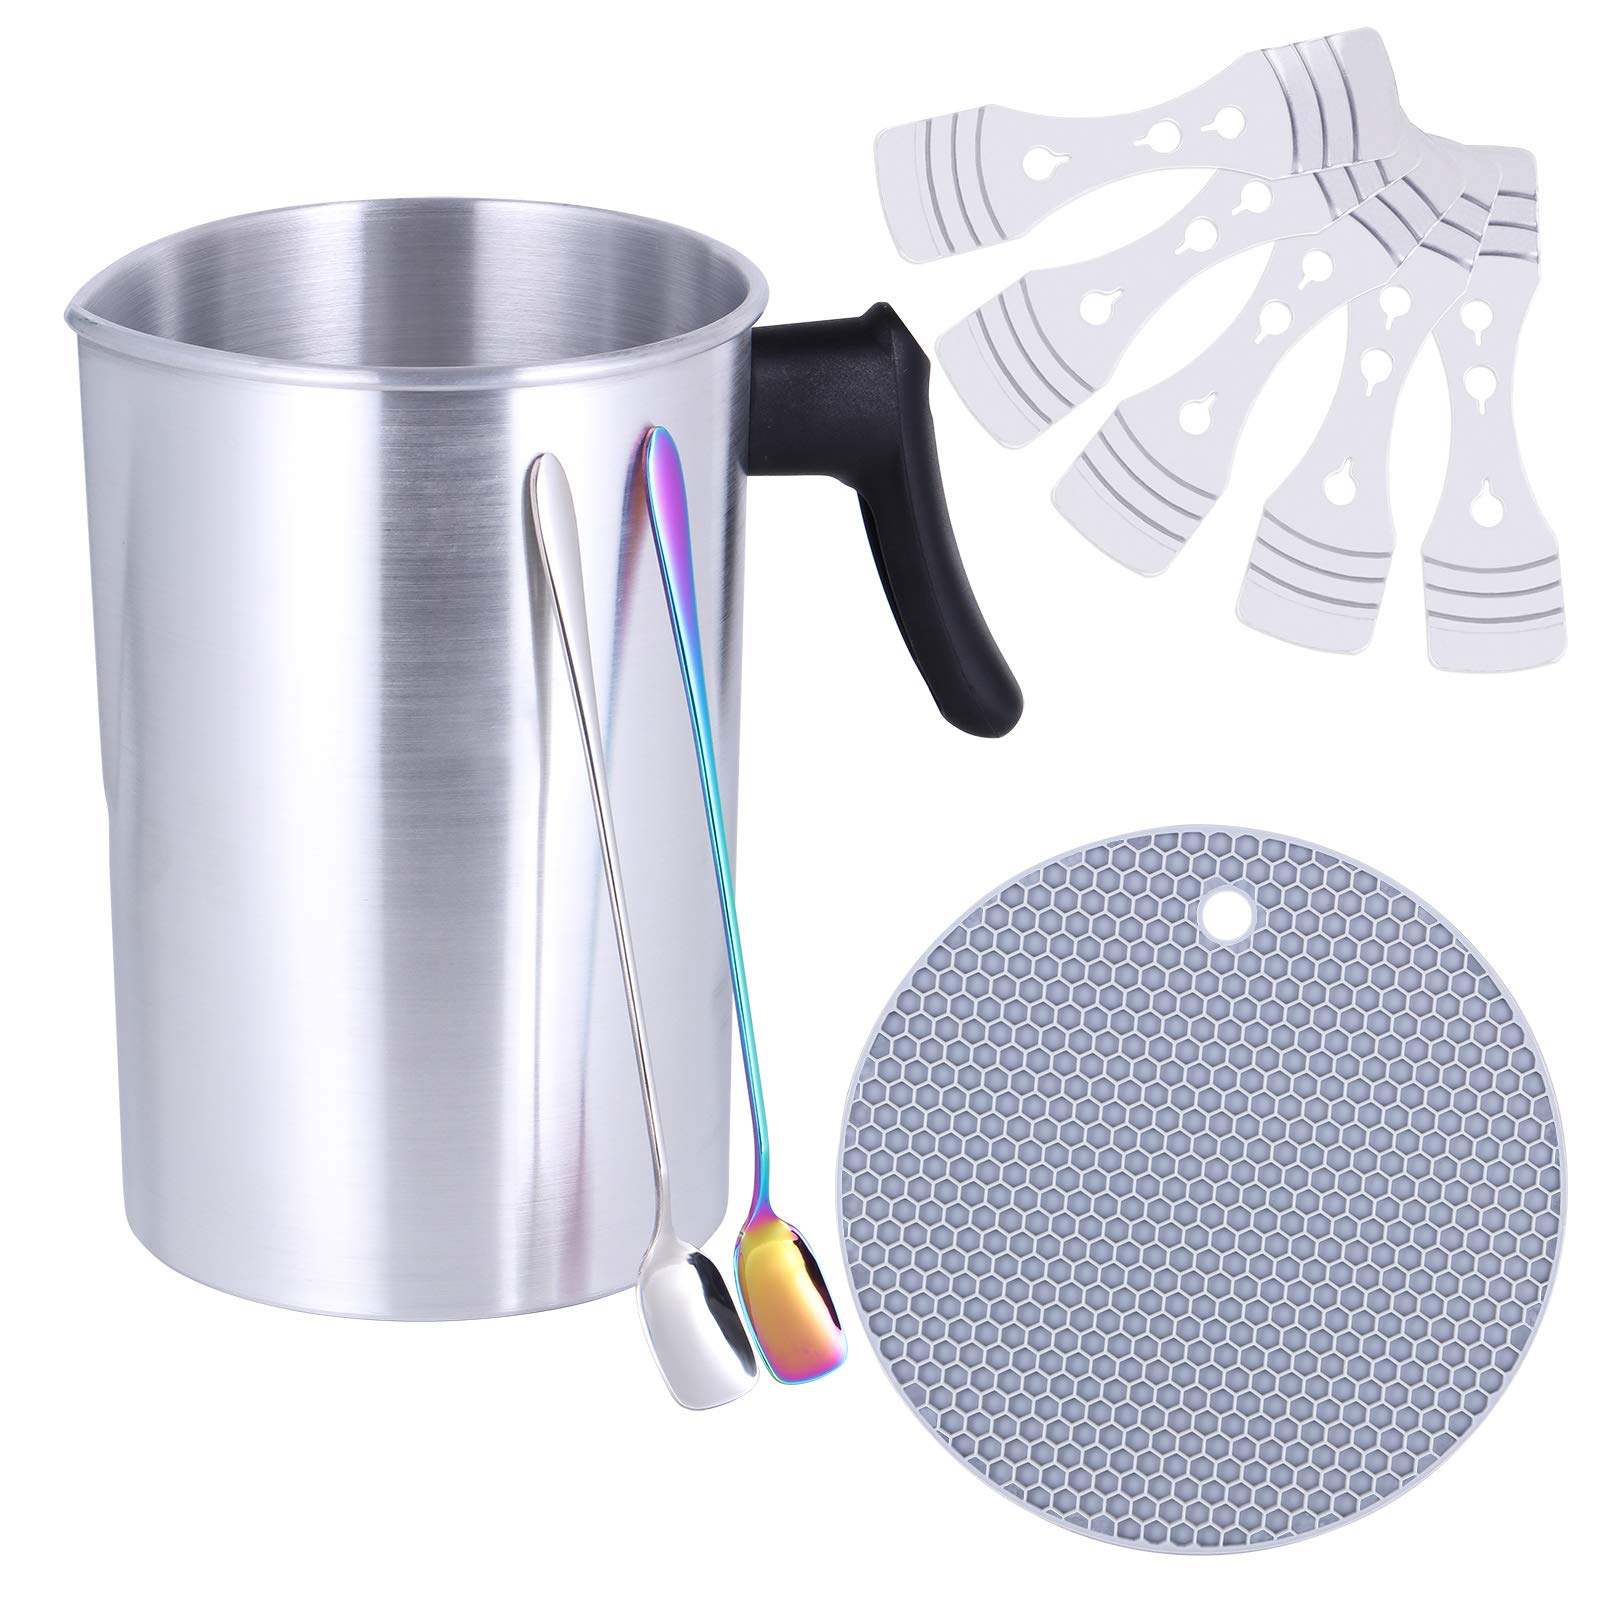 Candle Making Pouring Pot, TOKSEO 4 Pounds DIY Candle Making Kits, Candle Making Pitcher, Aluminum Construction Wax Melting Pot with Dripless Heat-Resisting Handle& Pouring Spout